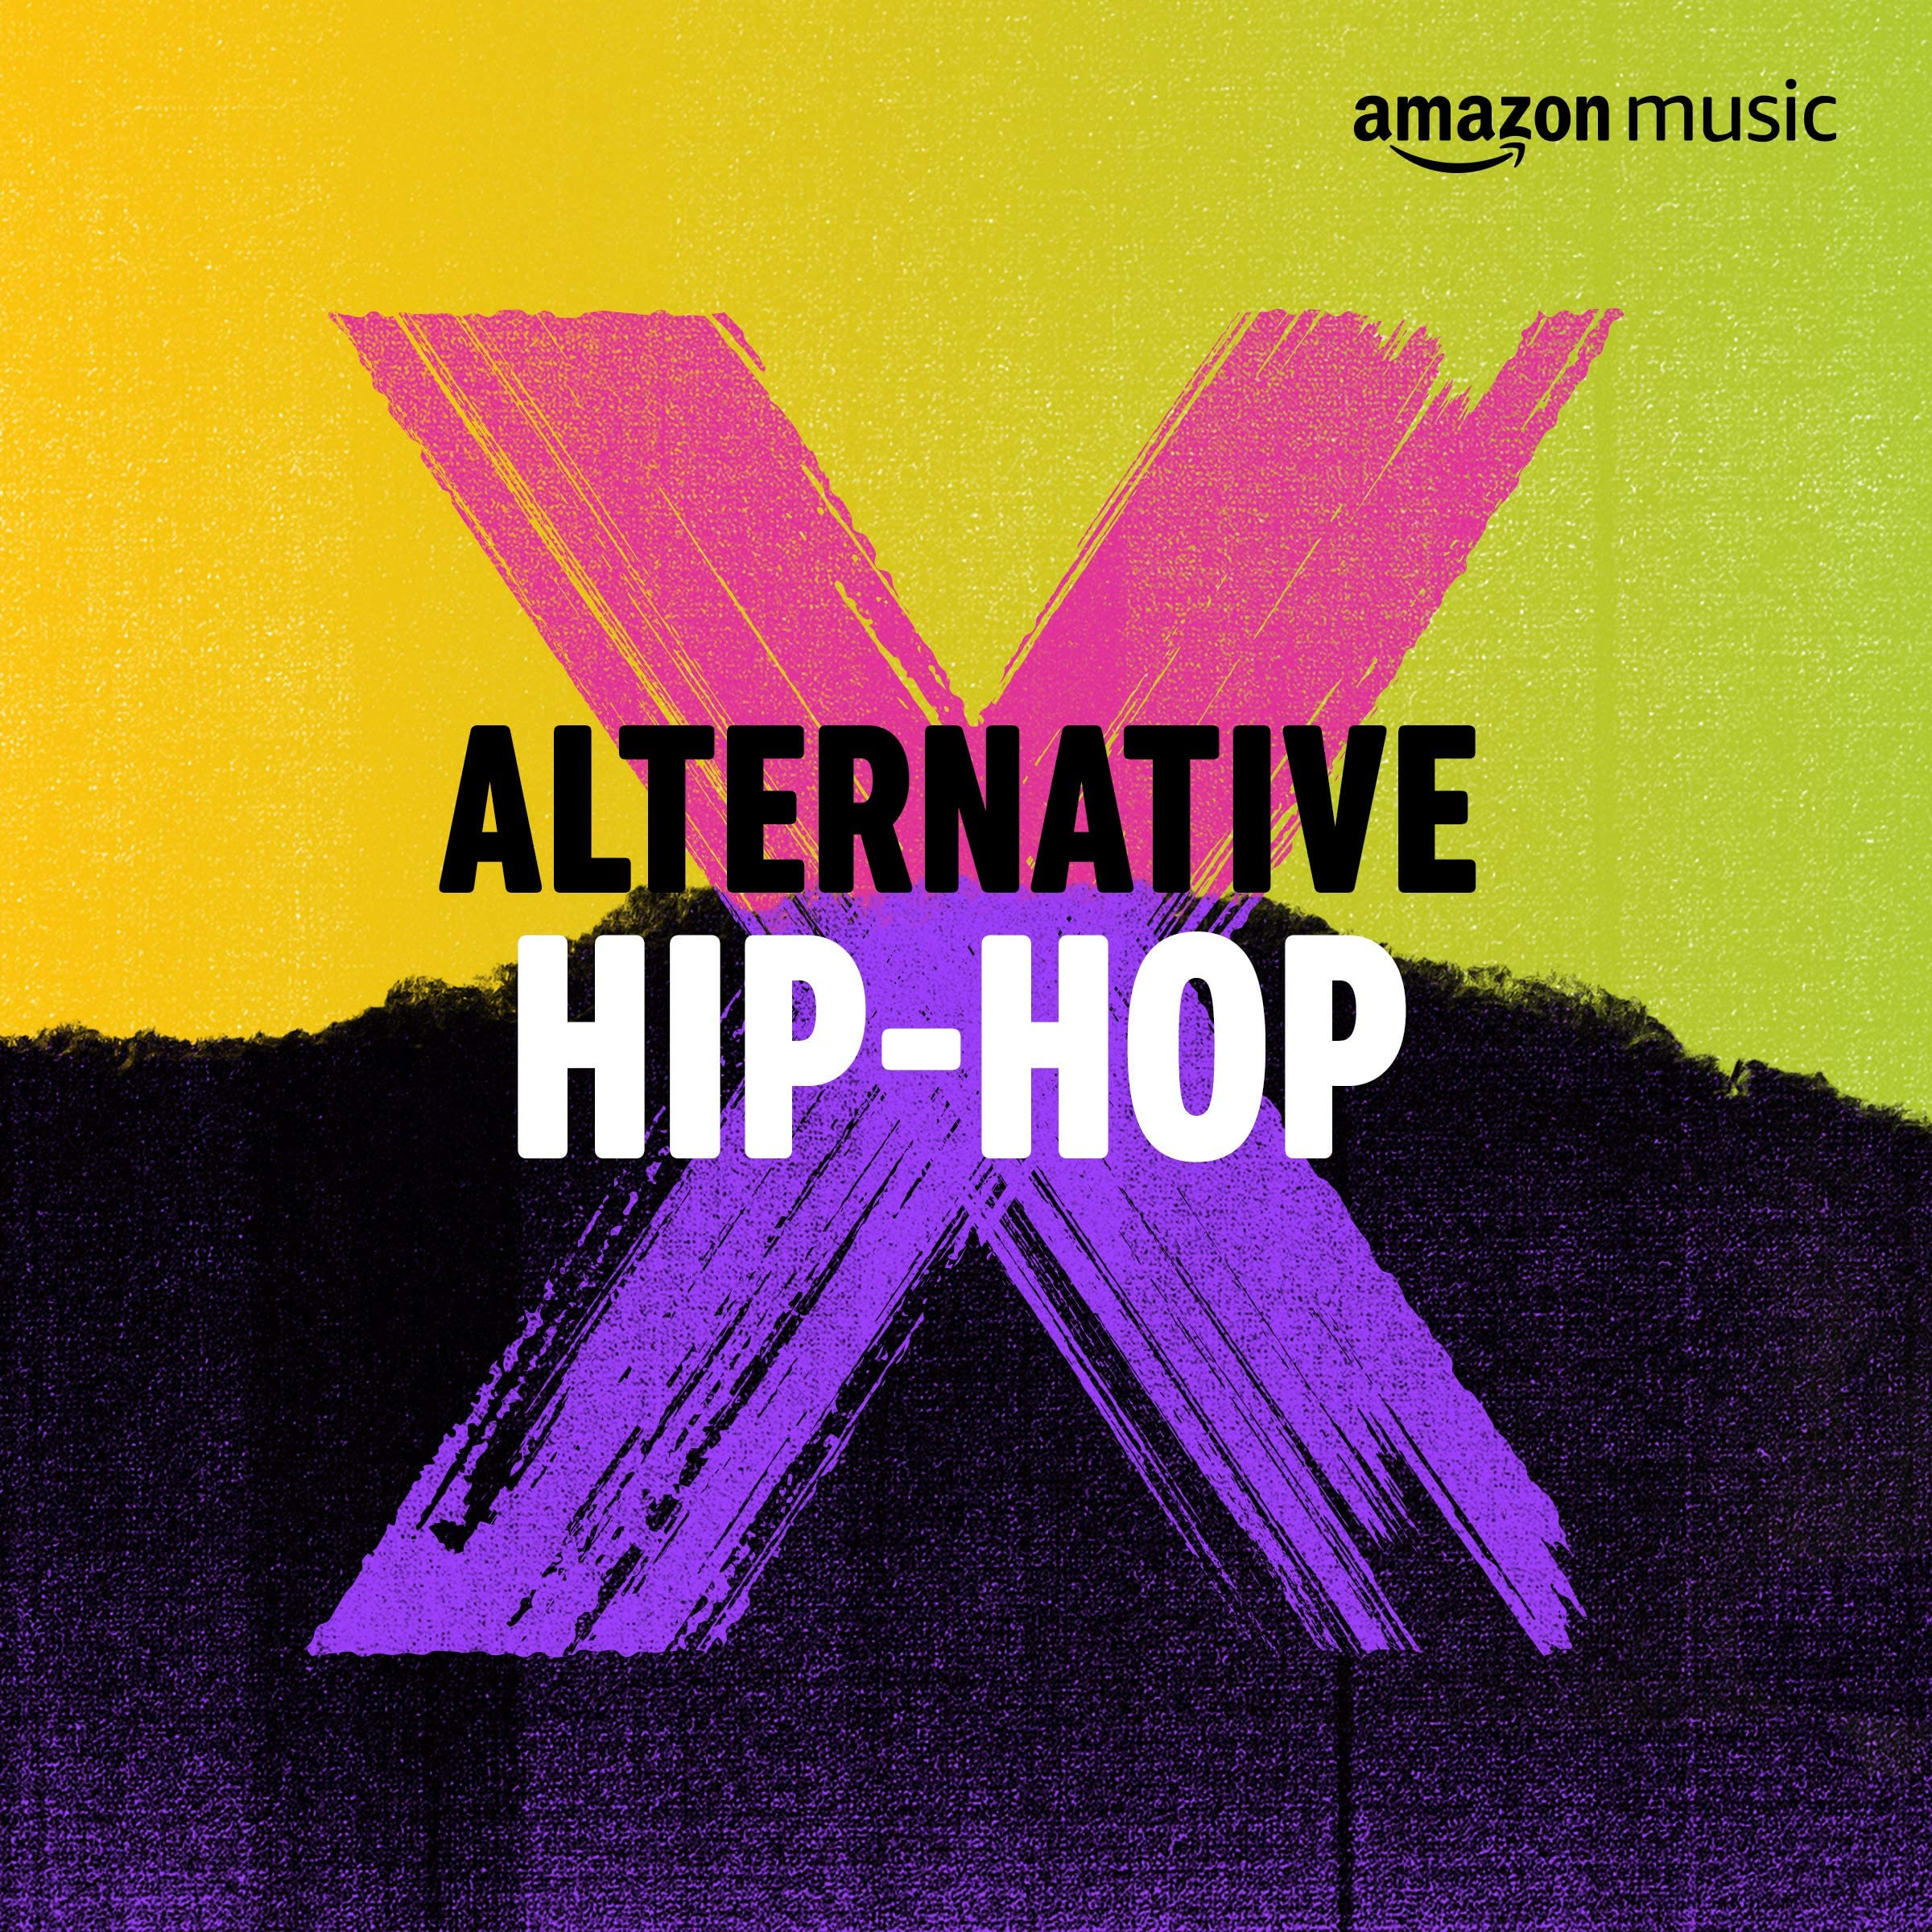 Alternative Hip-Hop